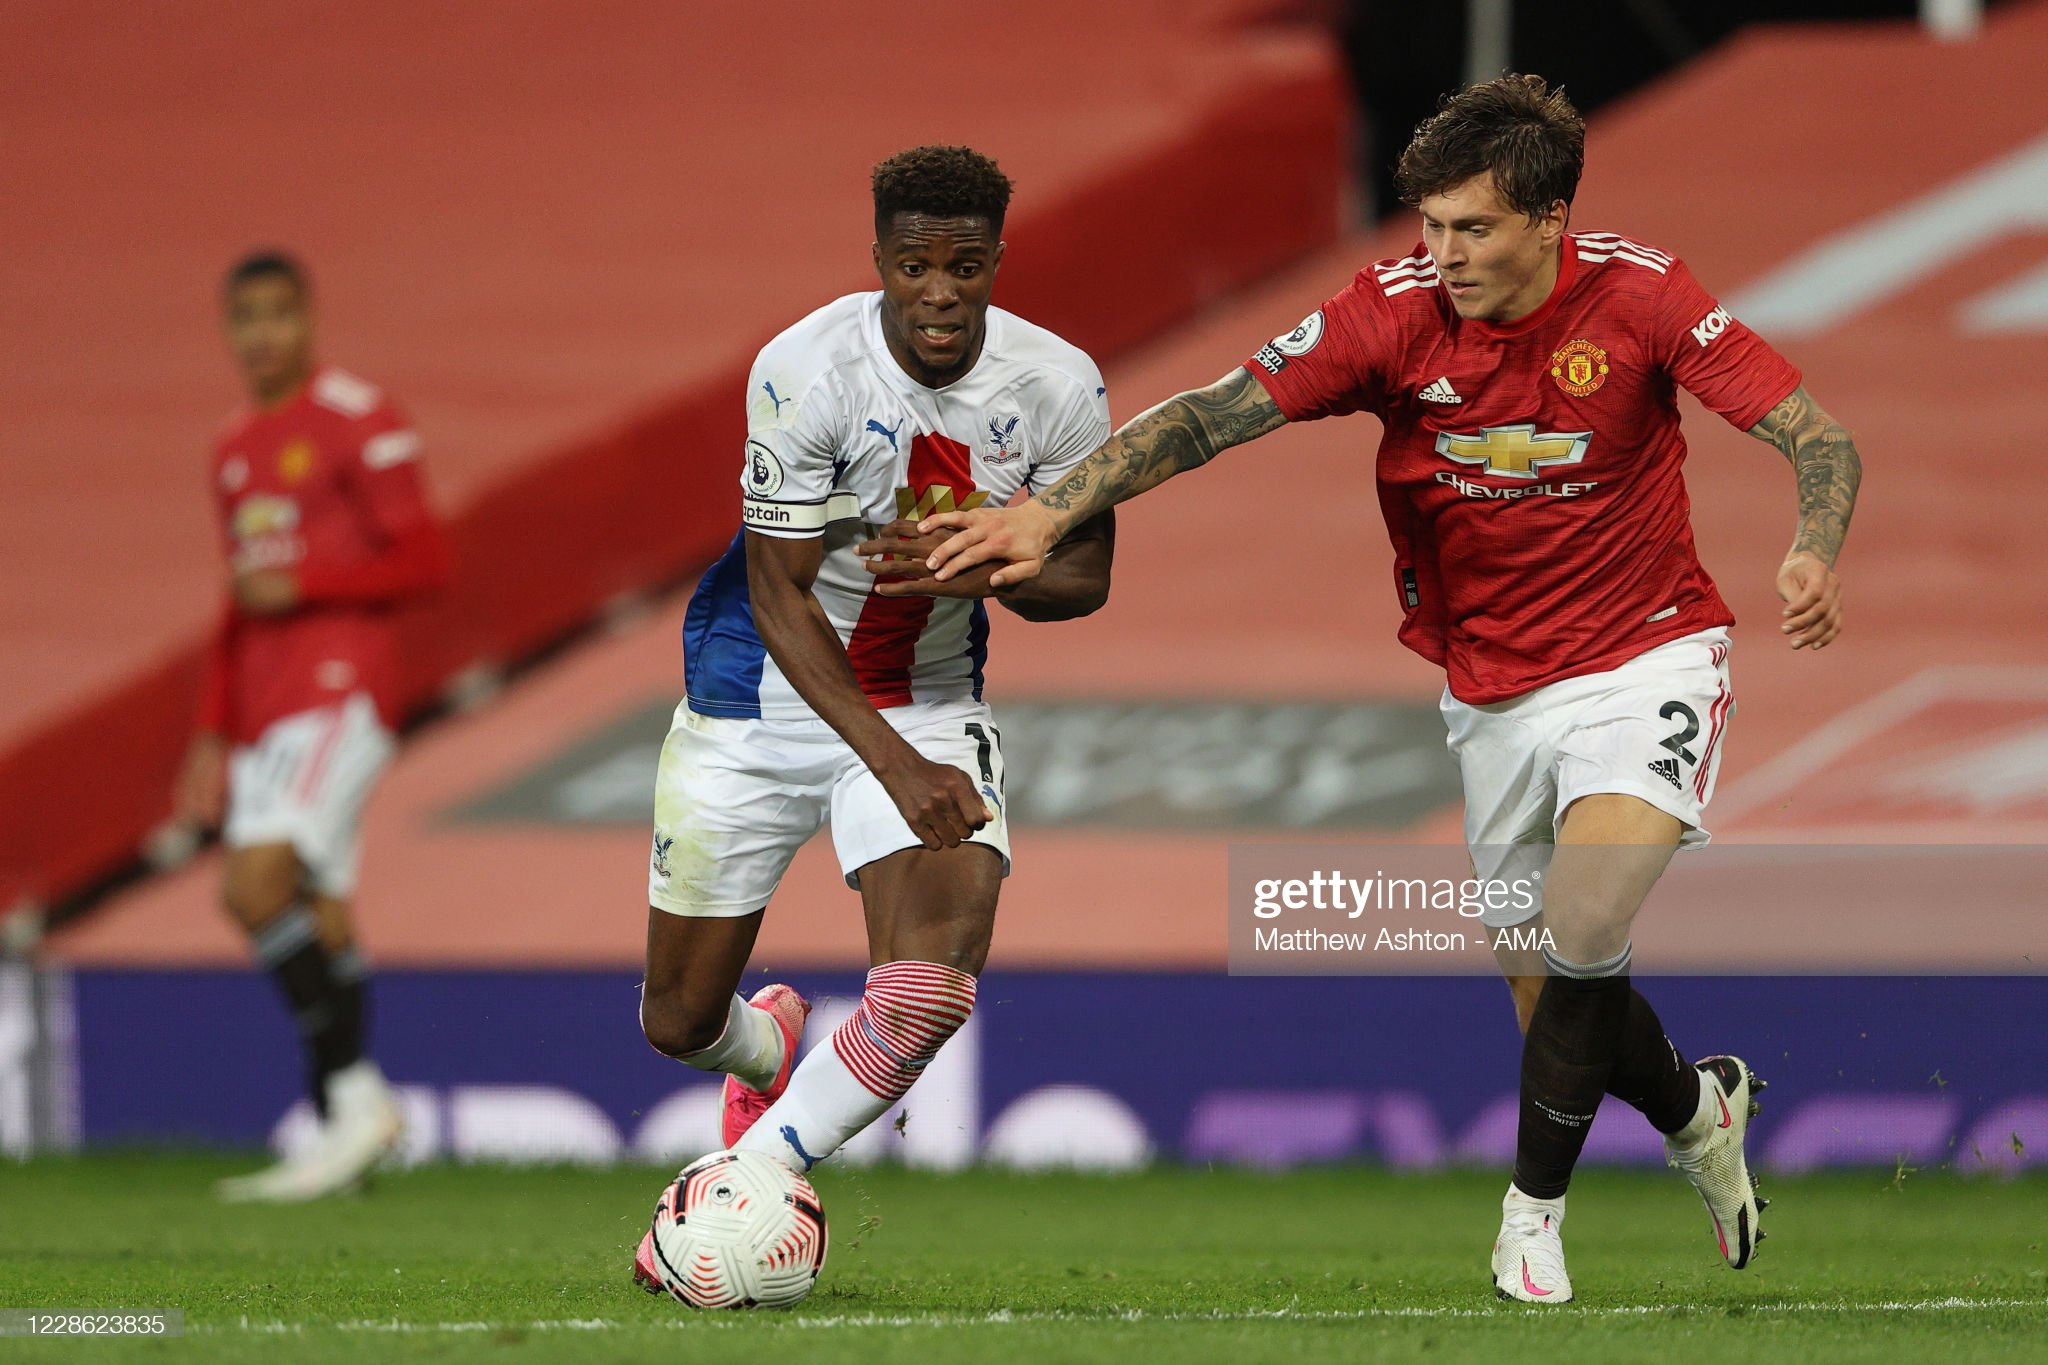 Crystal Palace vs Manchester United Preview, prediction and odds